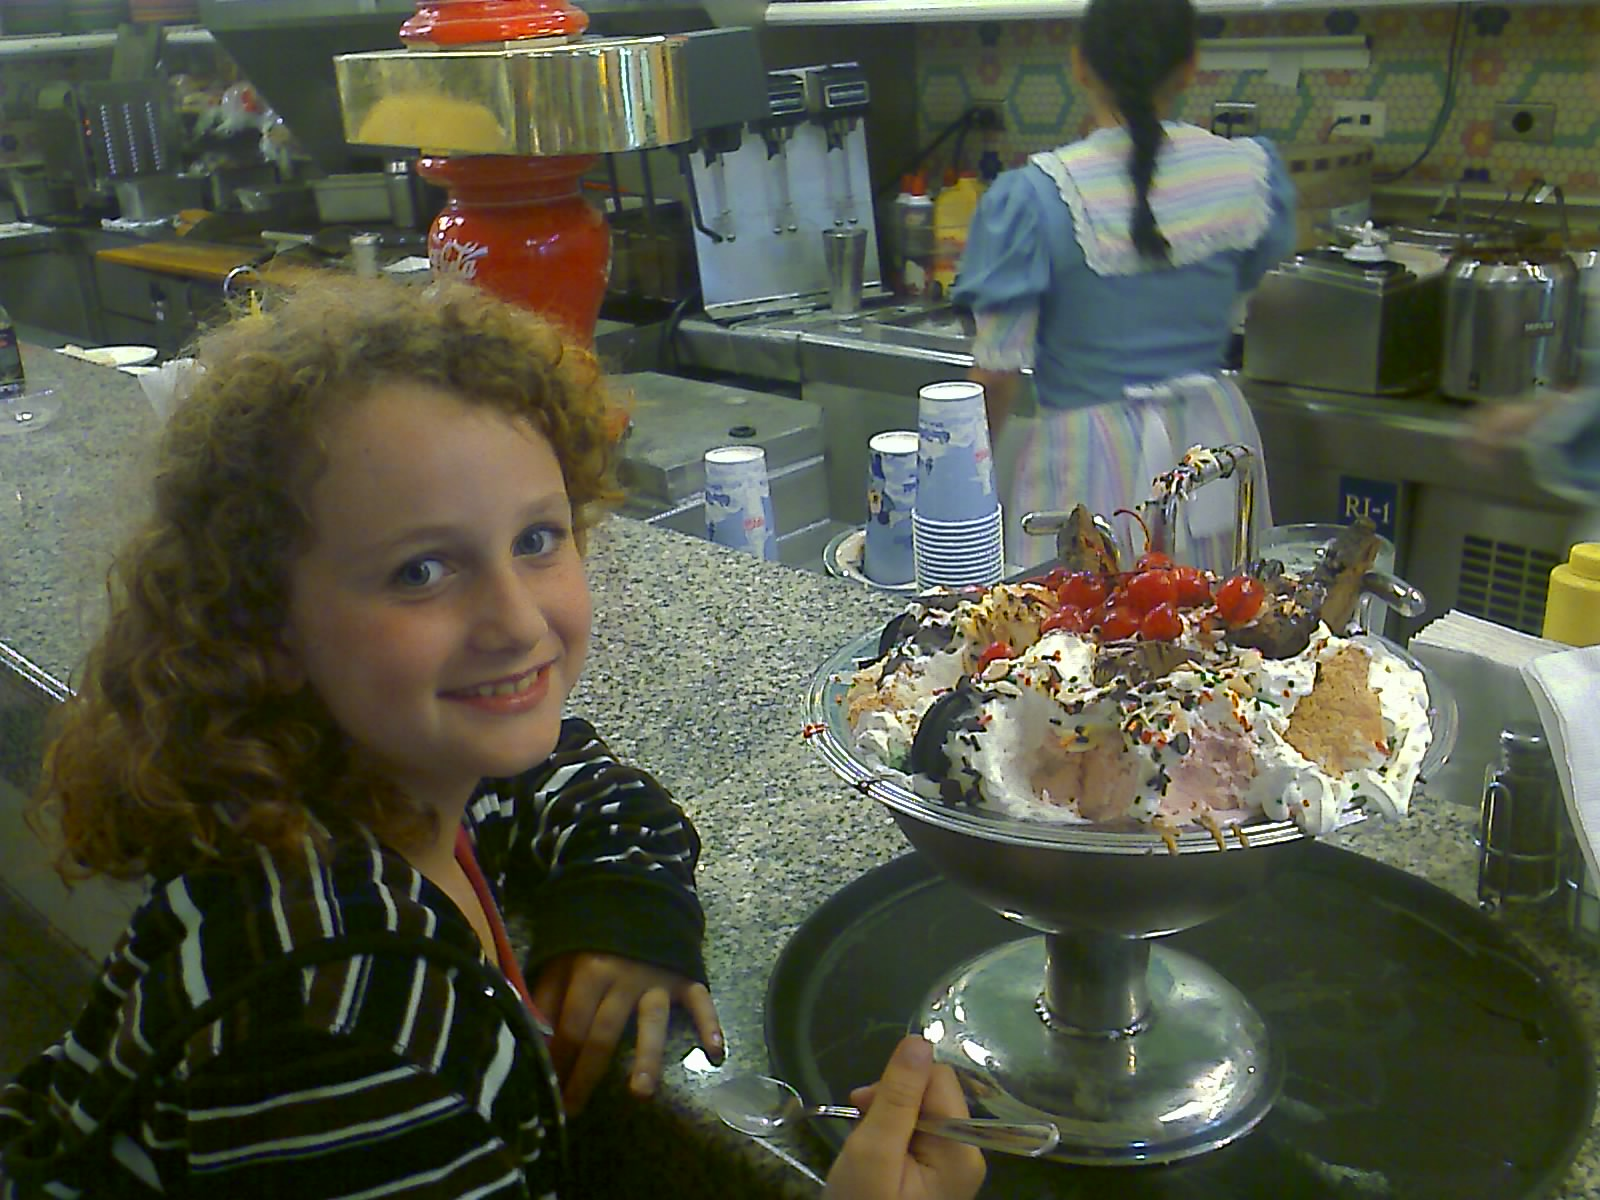 The Kitchen Sink at Beaches and Cream in the Disney Beach Club